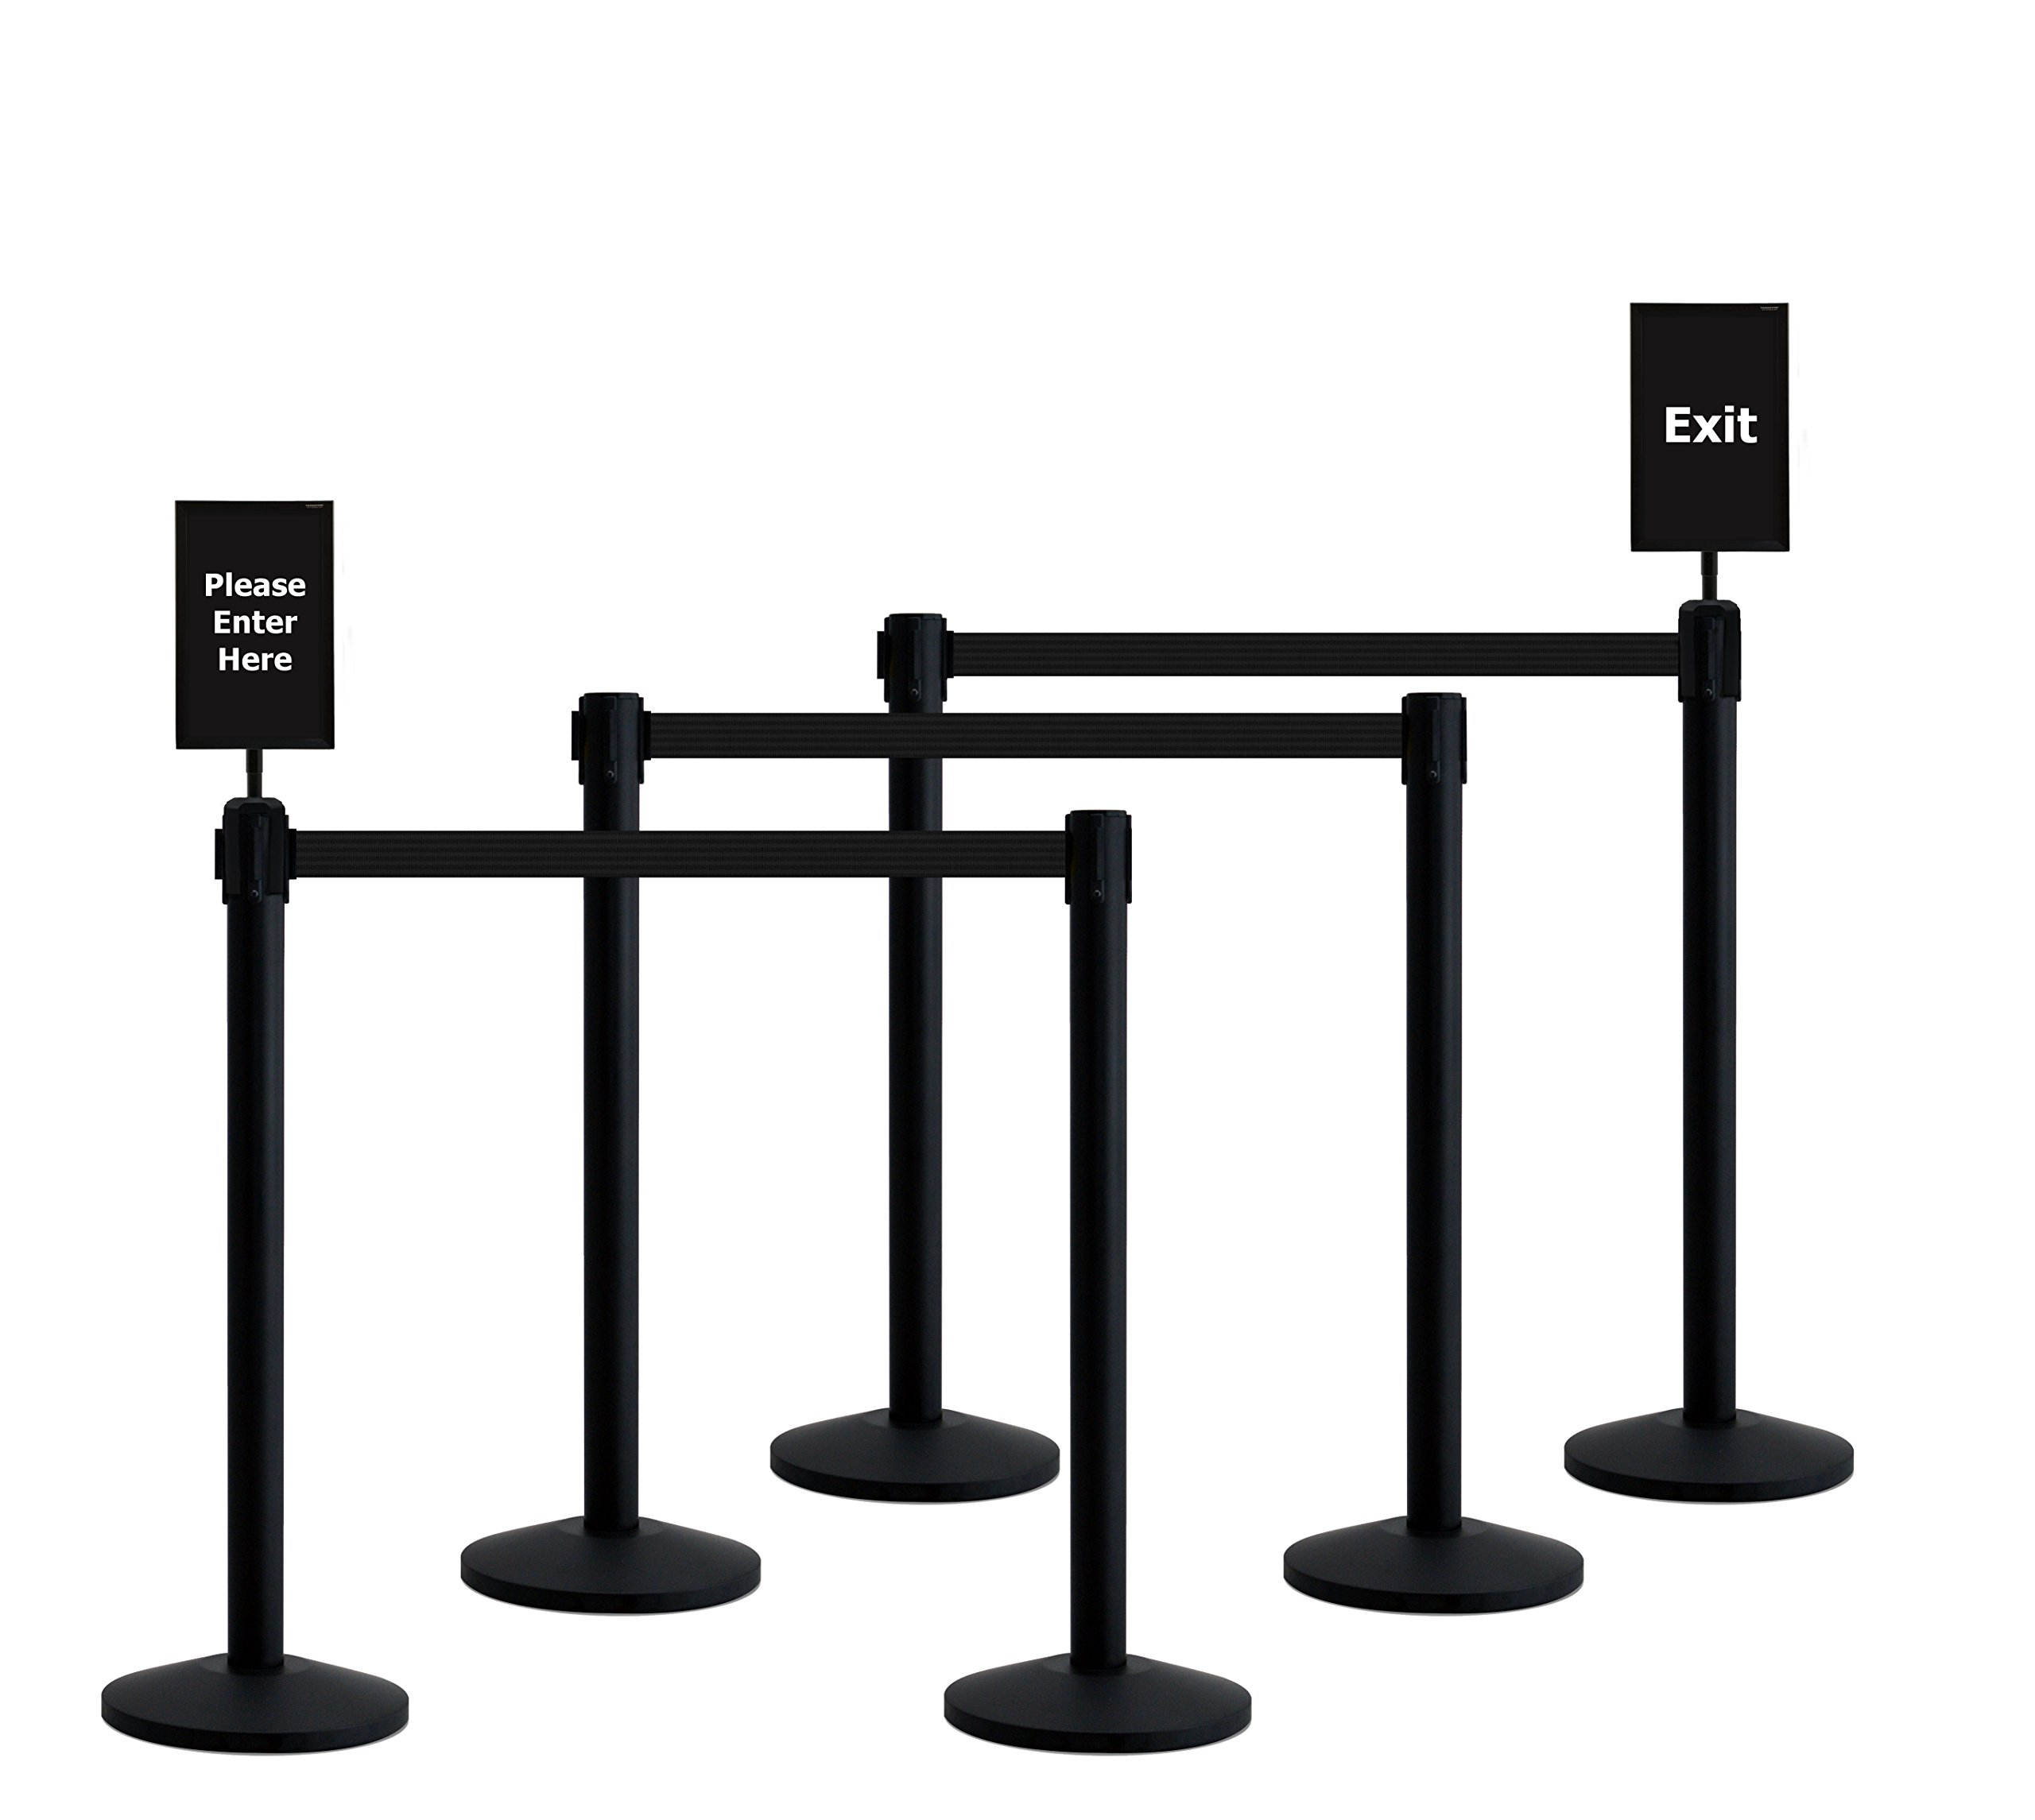 Queueway Crowd Control Retractable Belt Stanchion 6-Pack Kit with Signs USA Made (Black Webbing) by Queueway